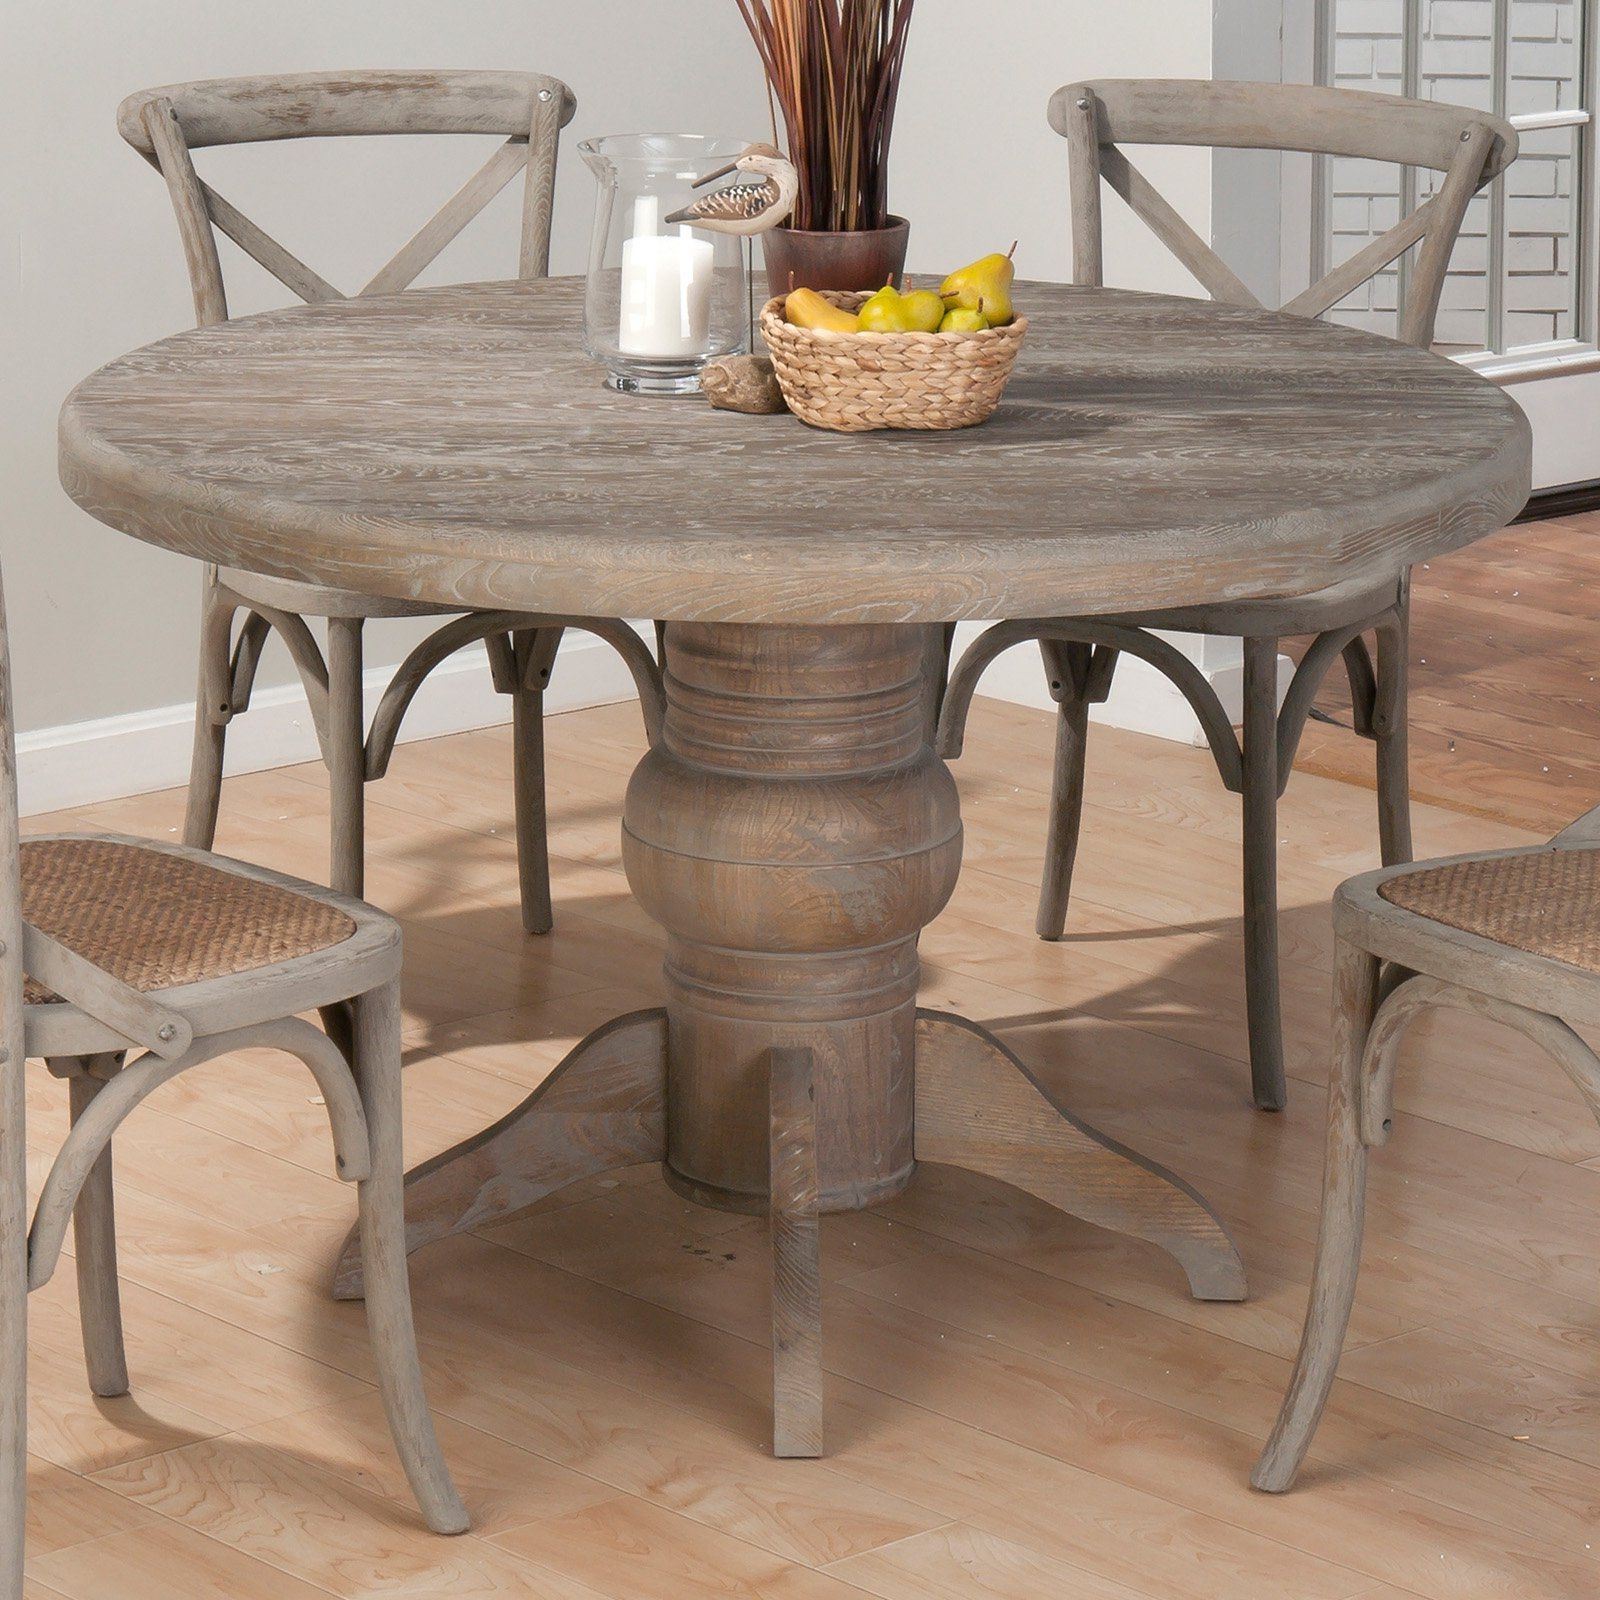 Distressed Grey Finish Wood Classic Design Dining Tables With Regard To Preferred Jofran Booth Bay Round Pedestal Dining Table – With A (View 27 of 30)